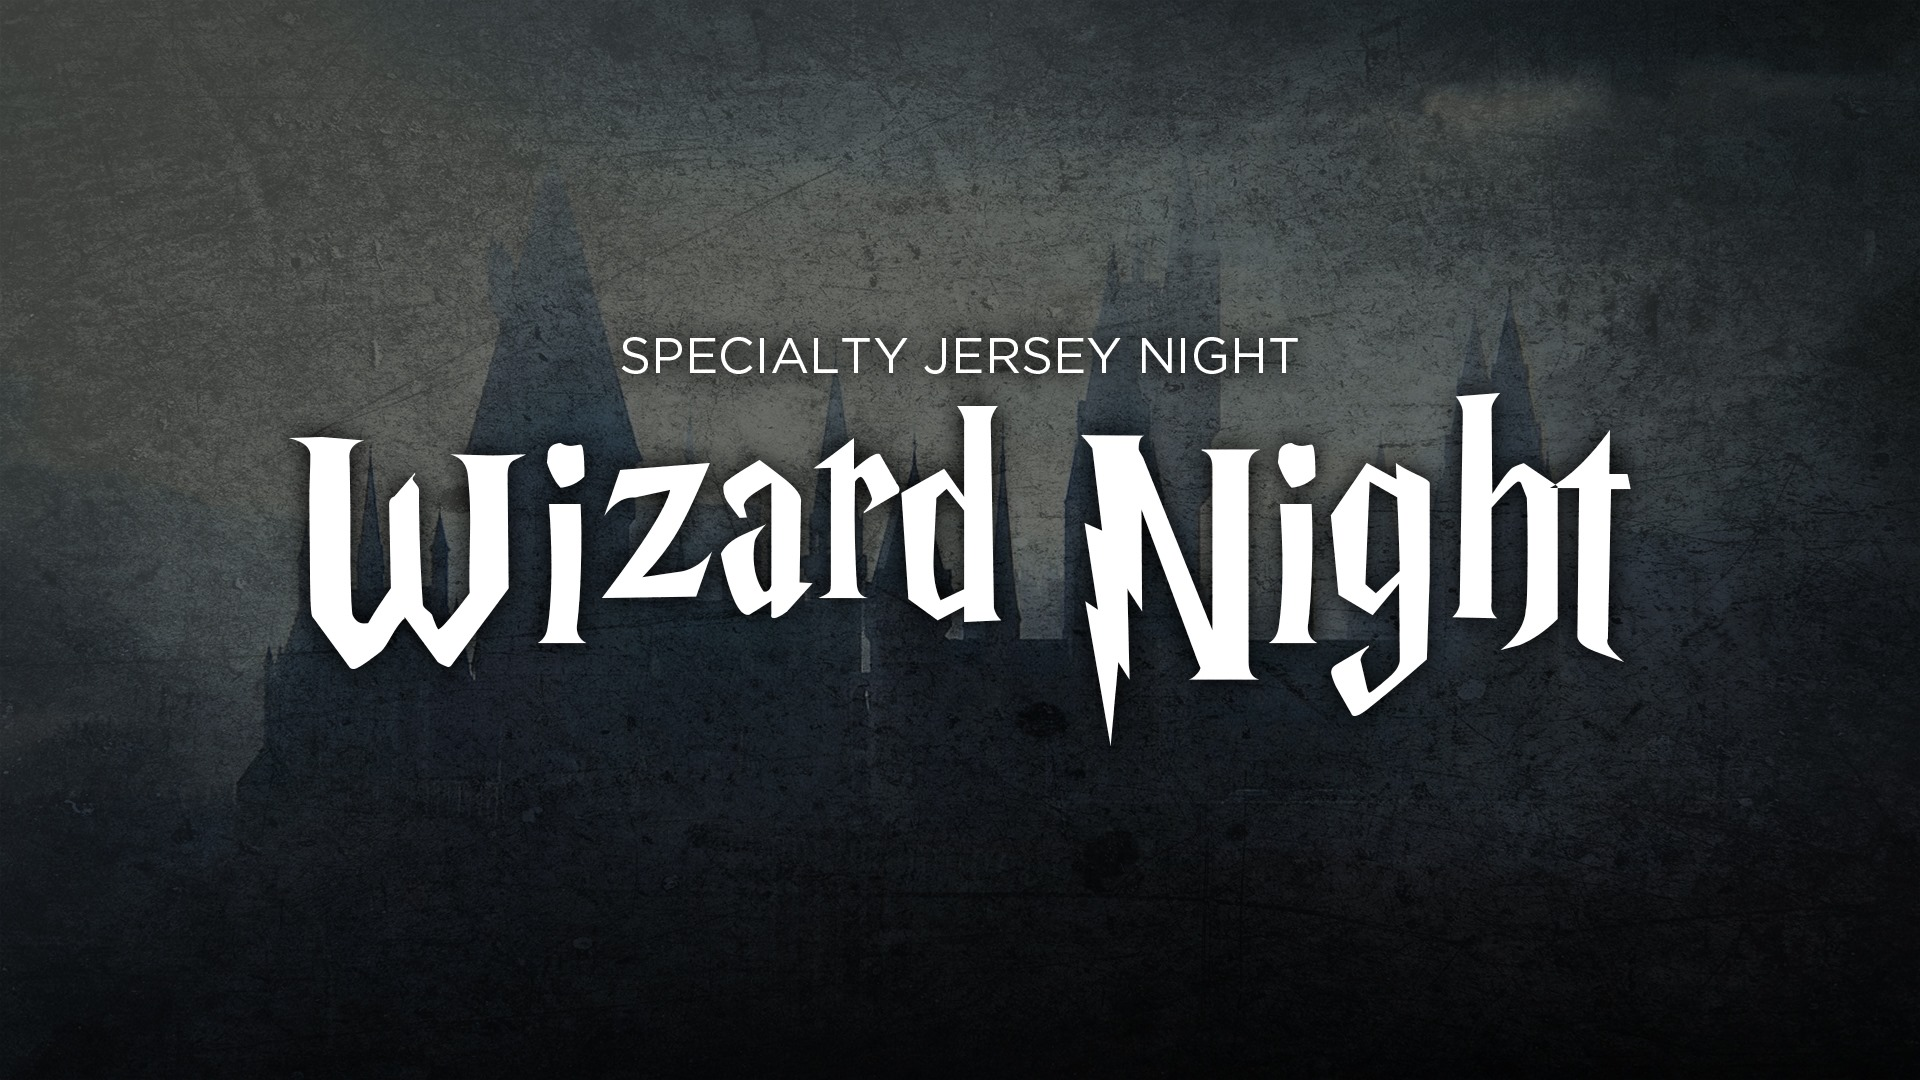 Knoxville Ice Bears Wizard Night